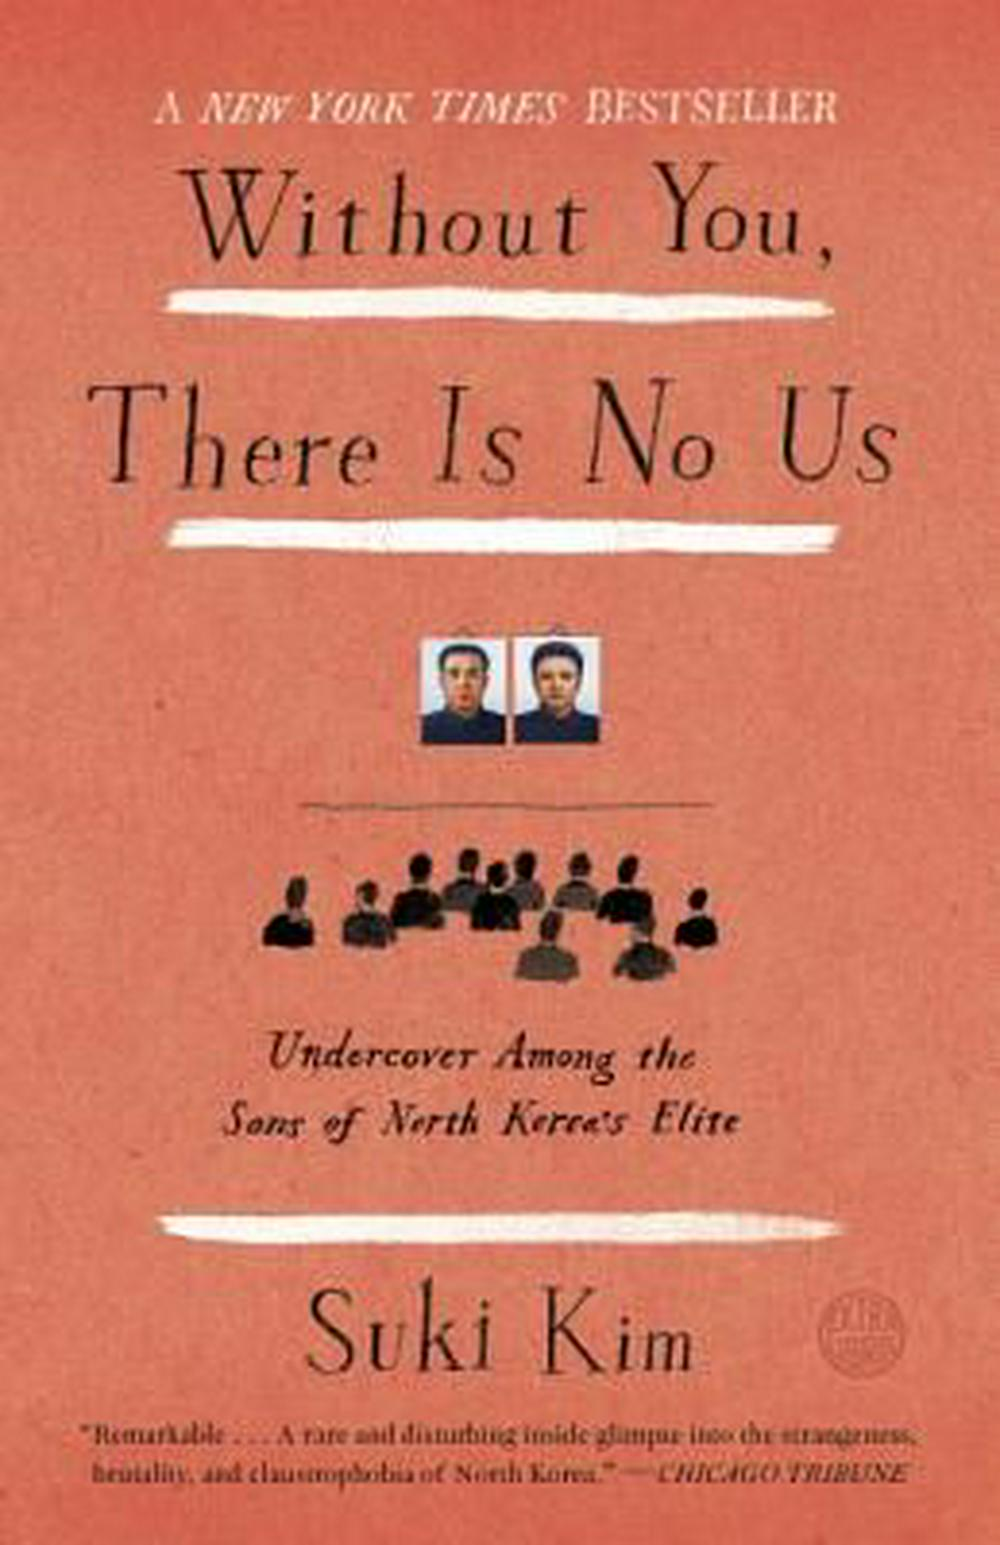 Without You, There Is No Us: My Time with the Sons of North Korea's Elite by Suki Kim, ISBN: 9780307720665